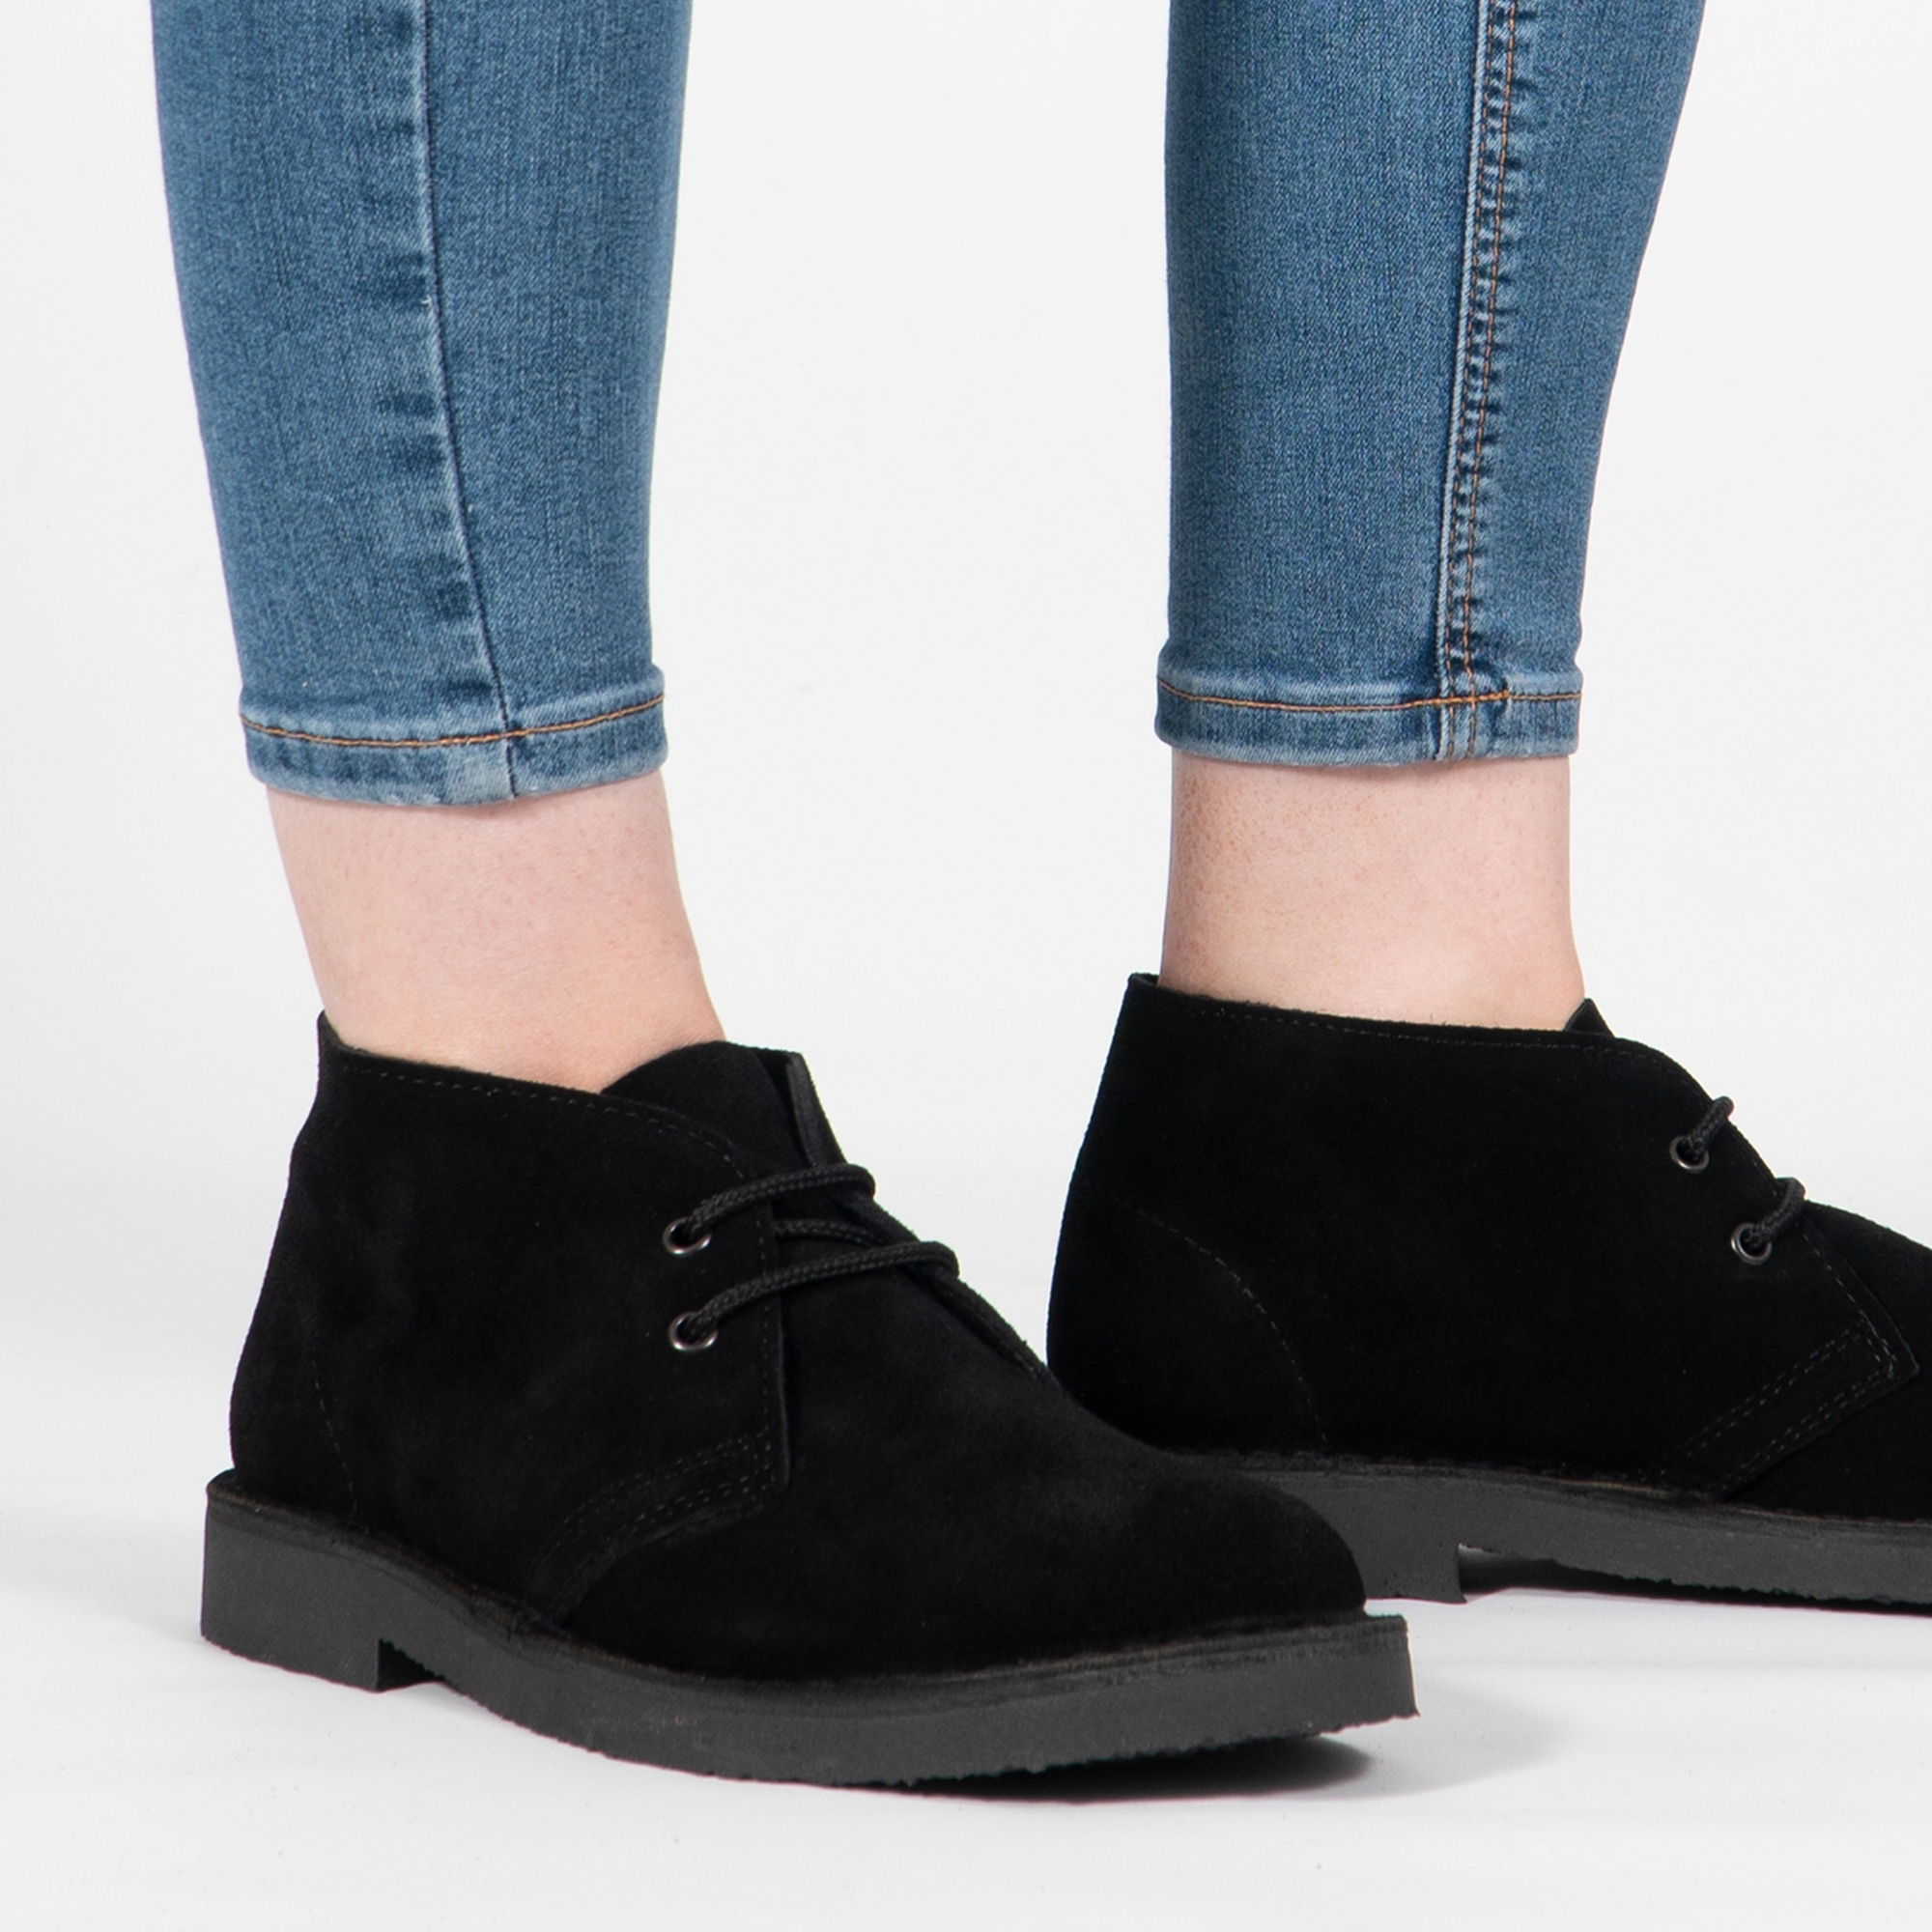 Roamers M467AS Unisex Black Suede Leather 2 Eyelet Desert Boots